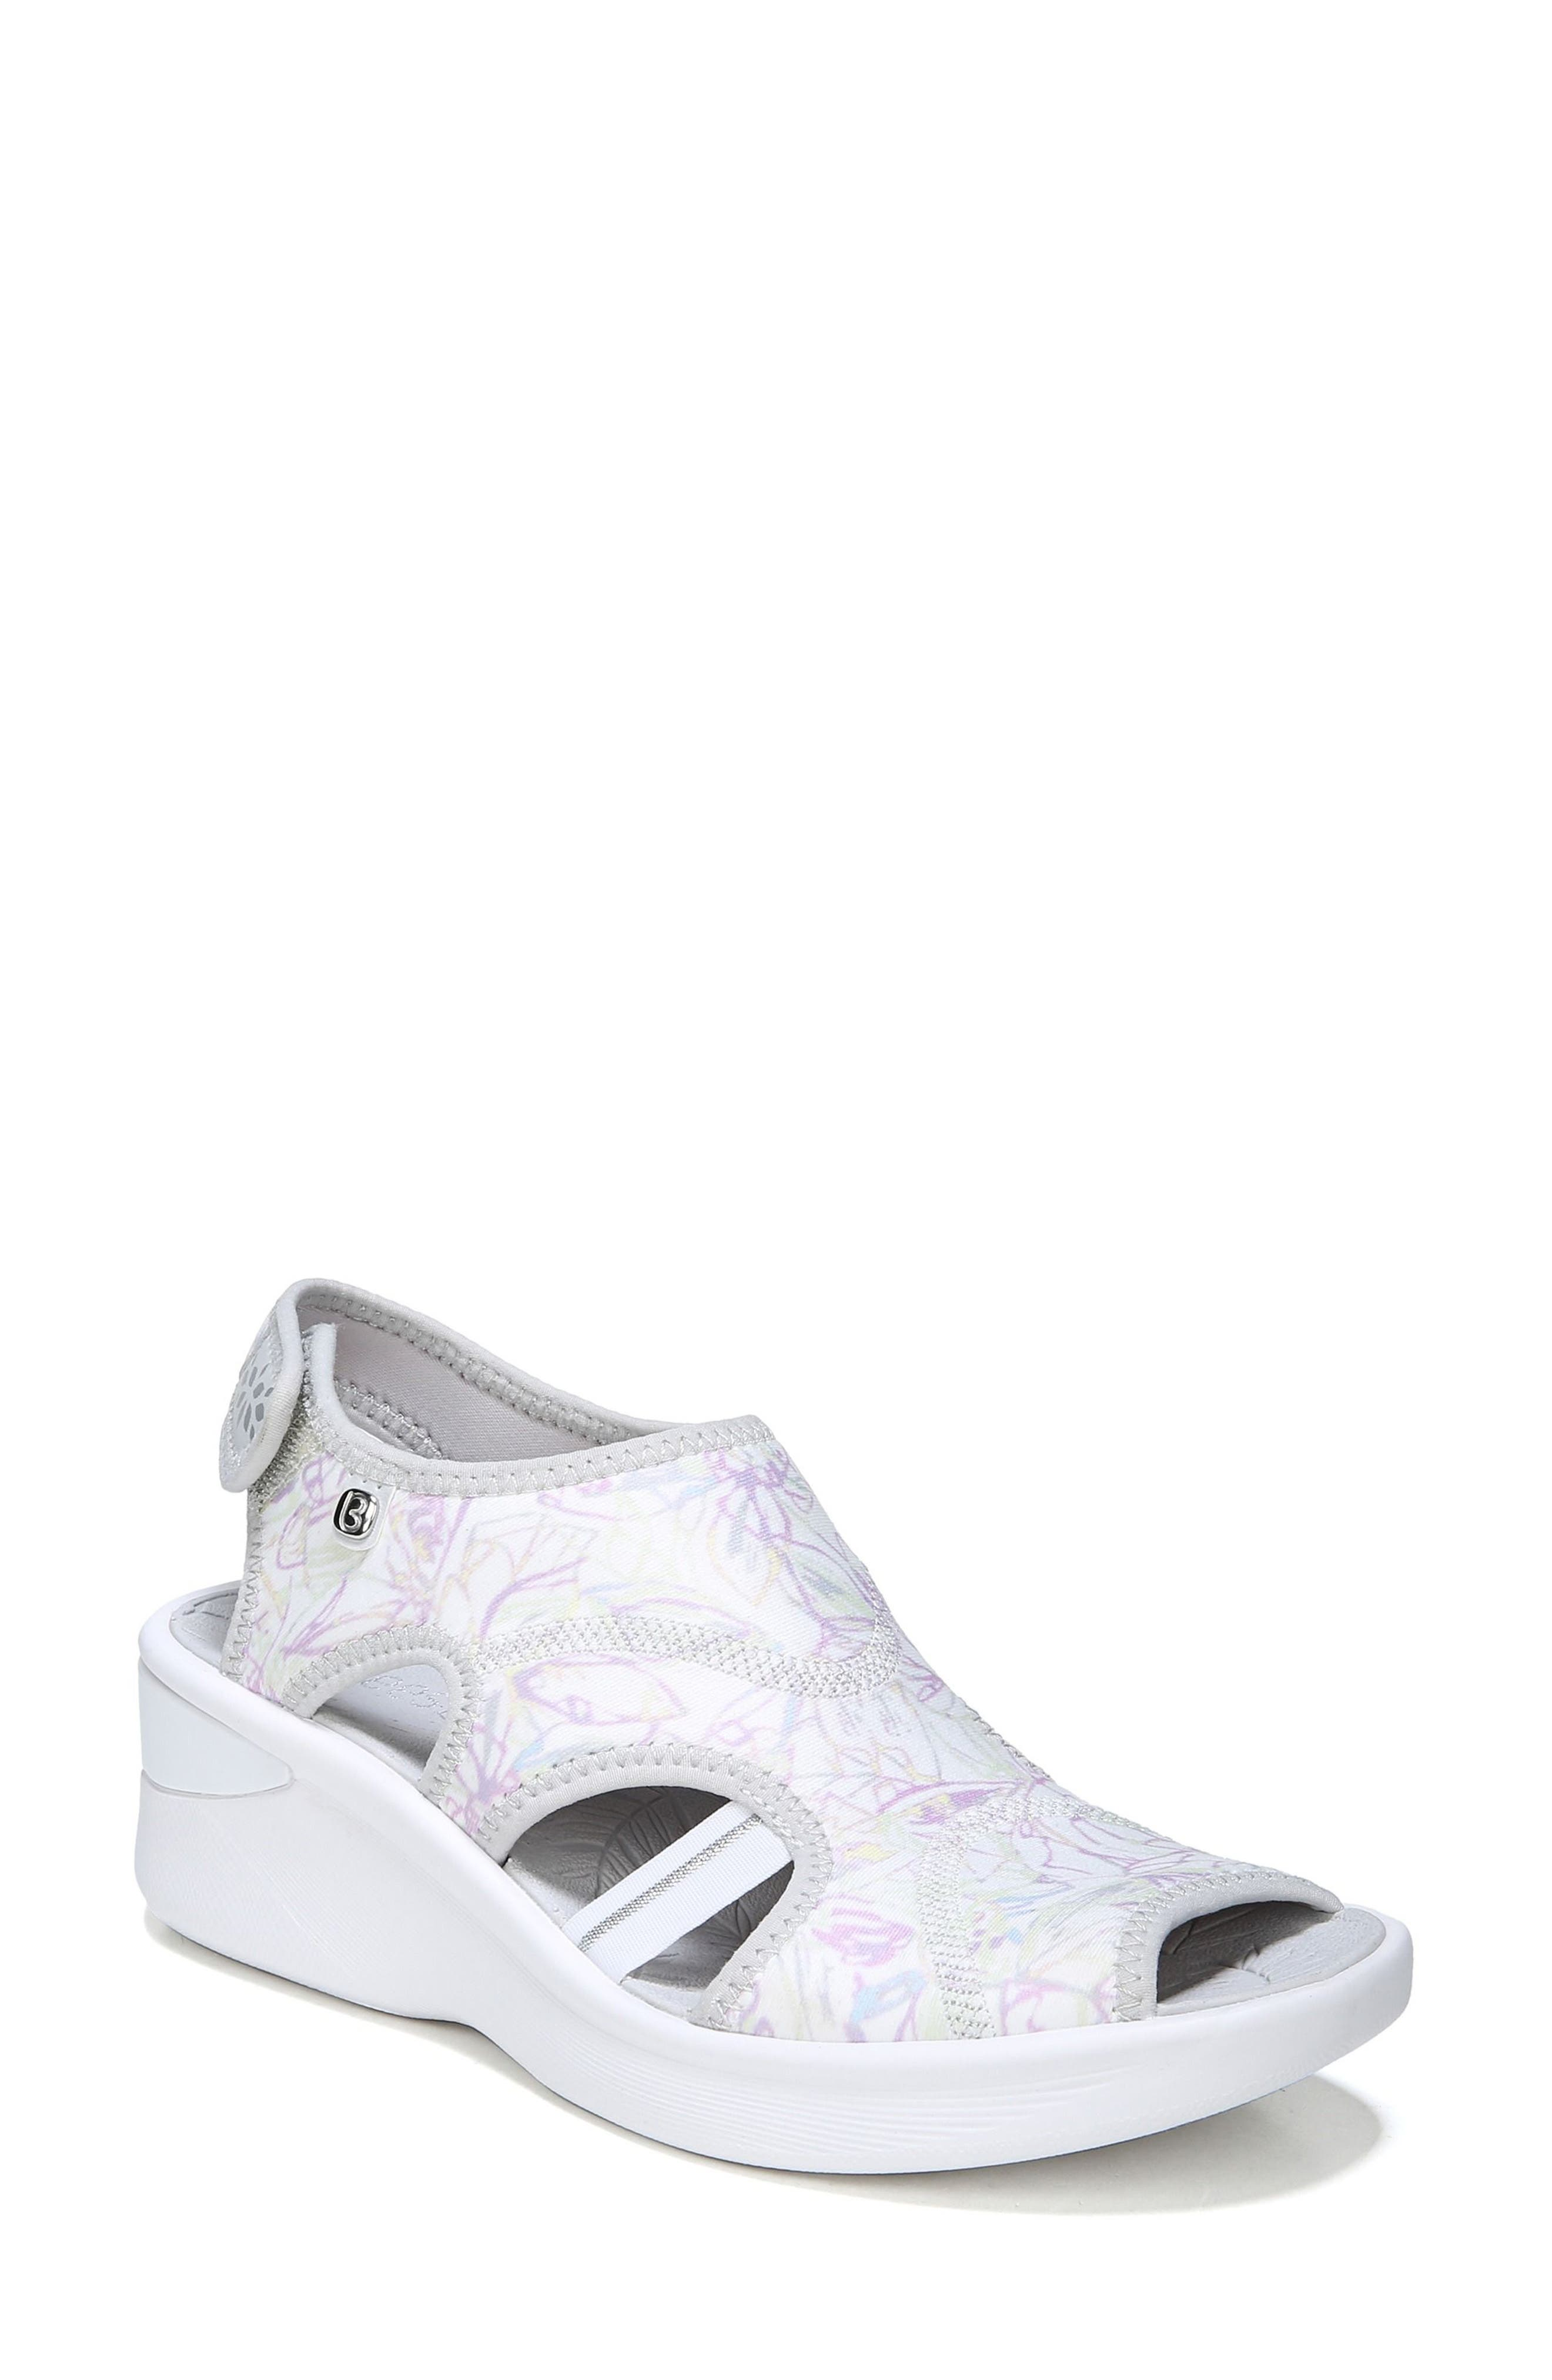 Spirit Sandal,                         Main,                         color, White Leather